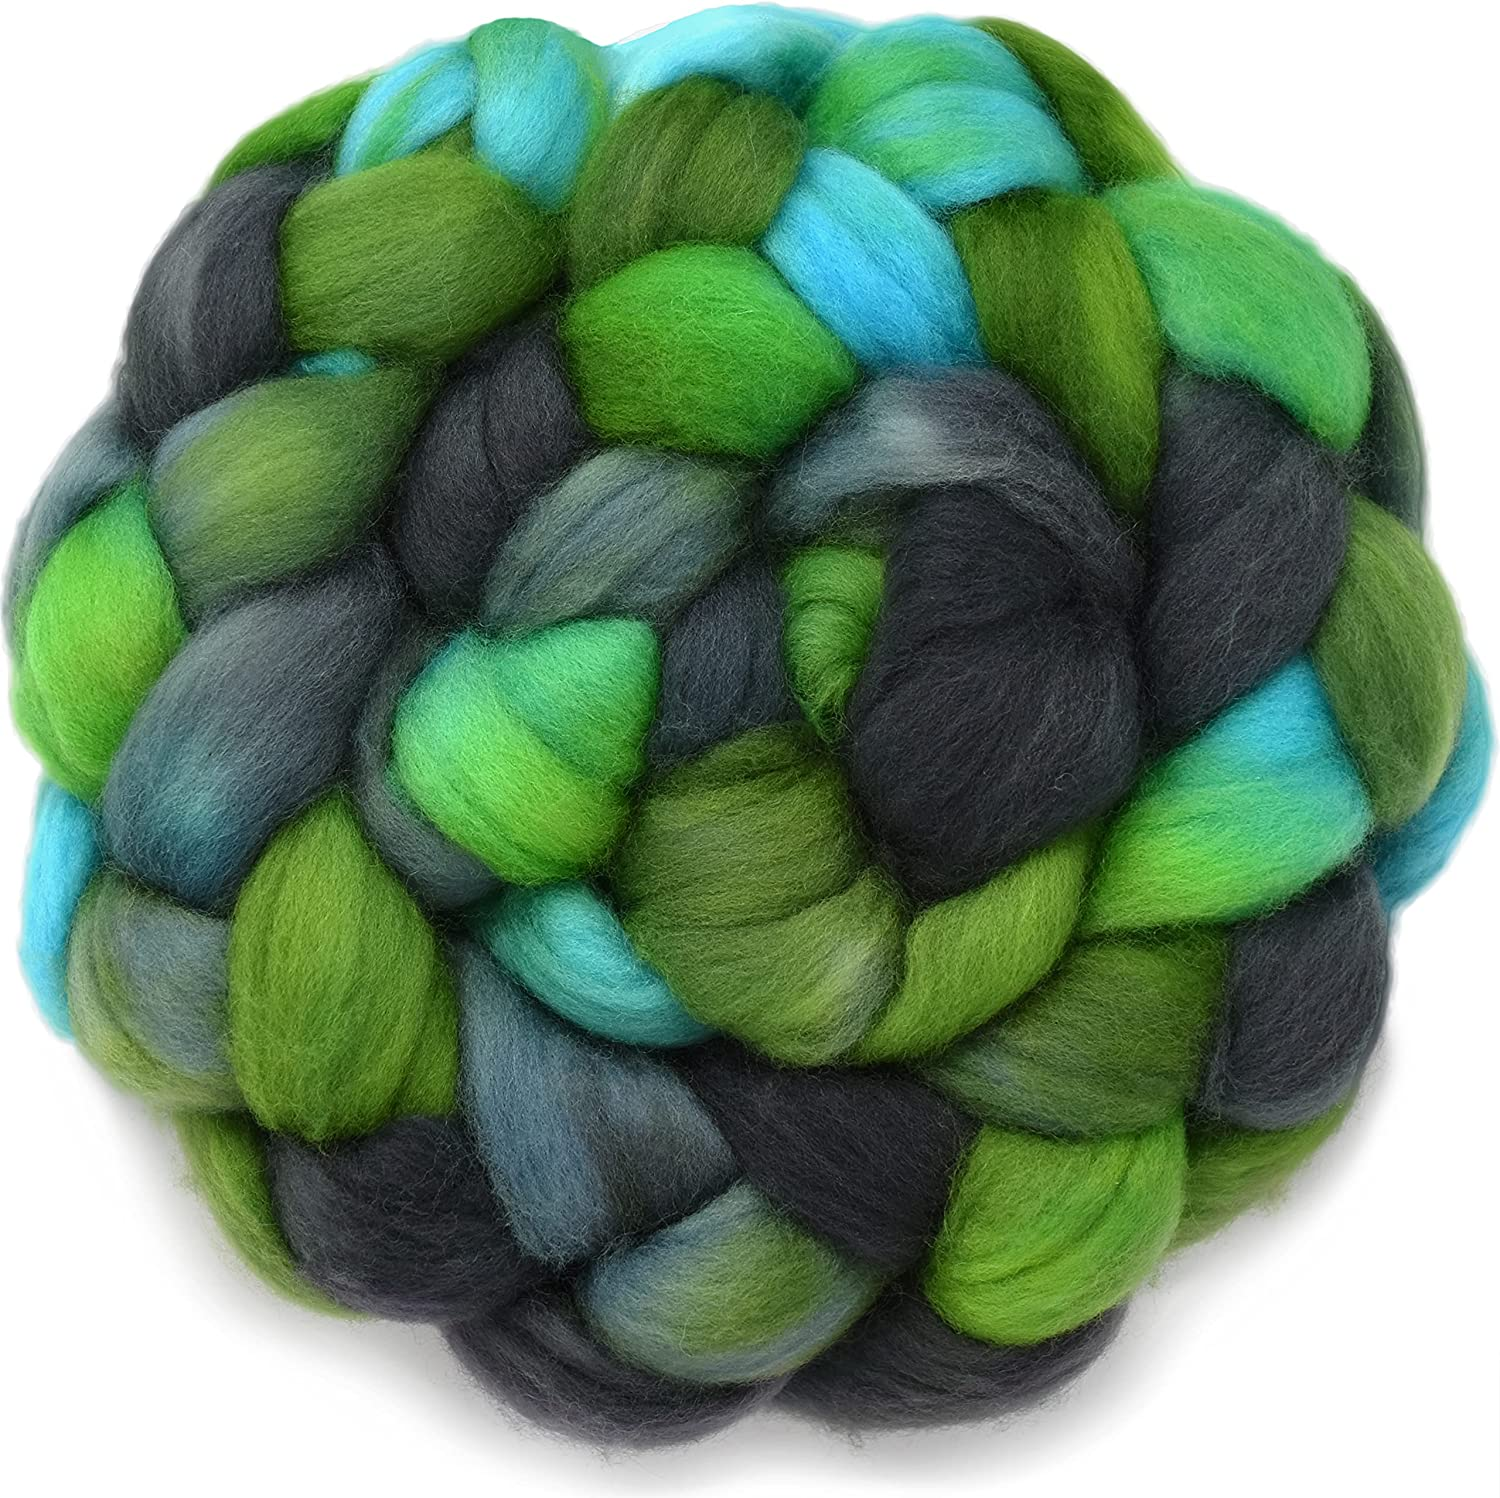 DOUBLE DIP - Colorful Award-winning store Artisan Wool 67% OFF of fixed price Spinning and for Roving Felti